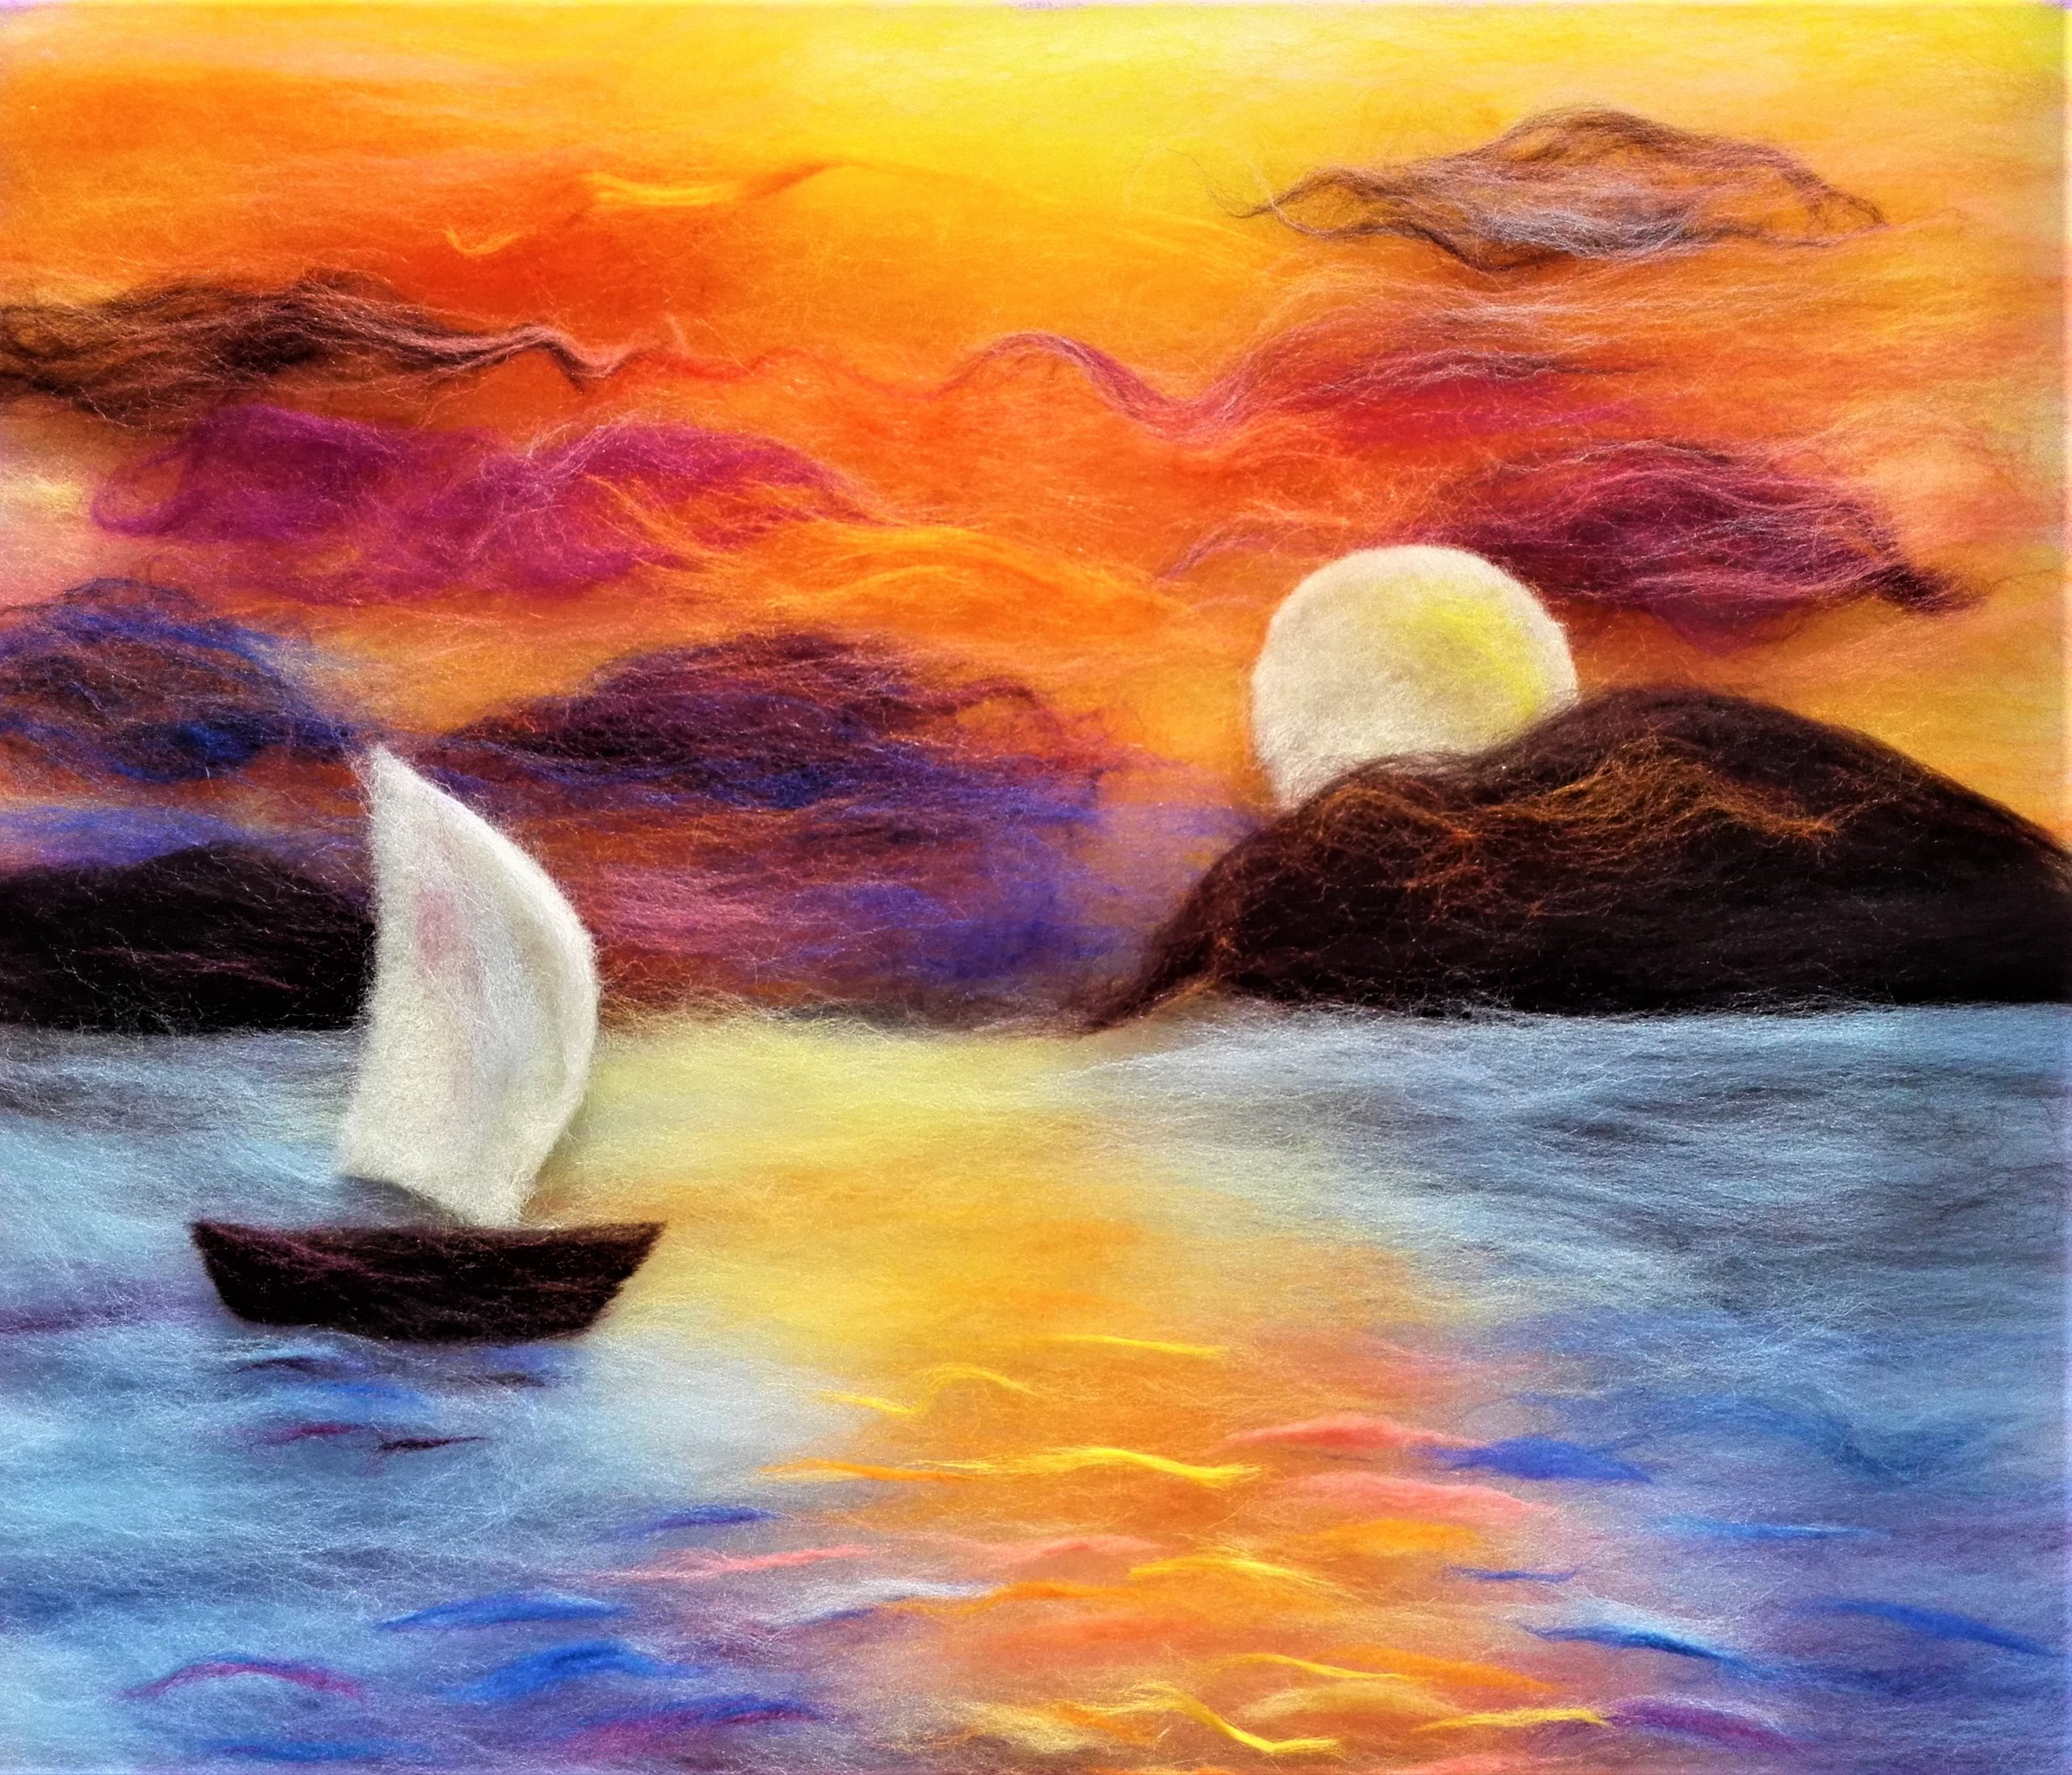 Sunset wool painting art and craft kit